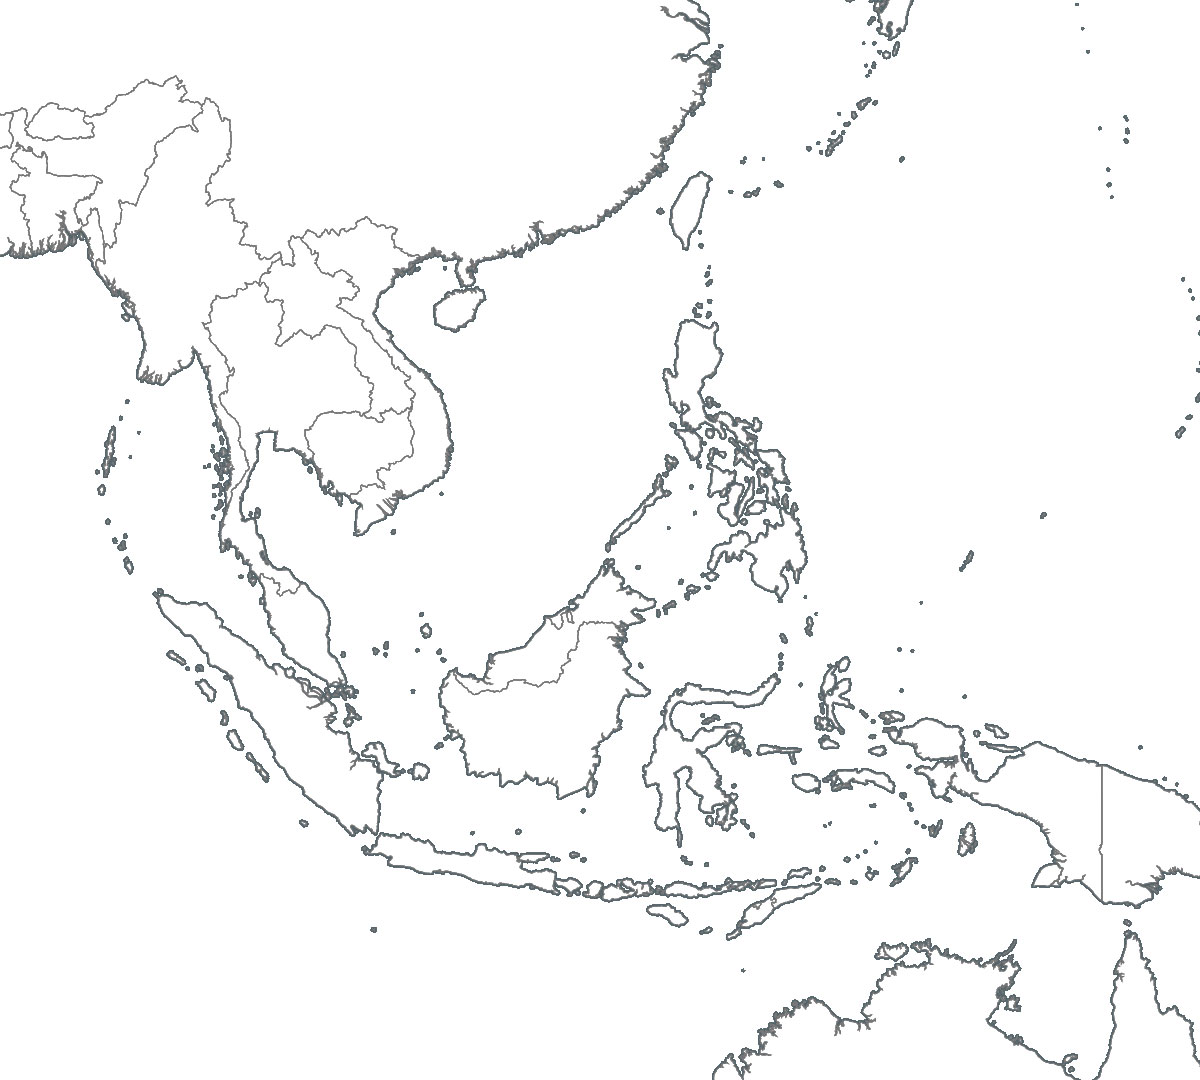 Free Maps Of ASEAN And Southeast Asia ASEAN UP - Blank continent map